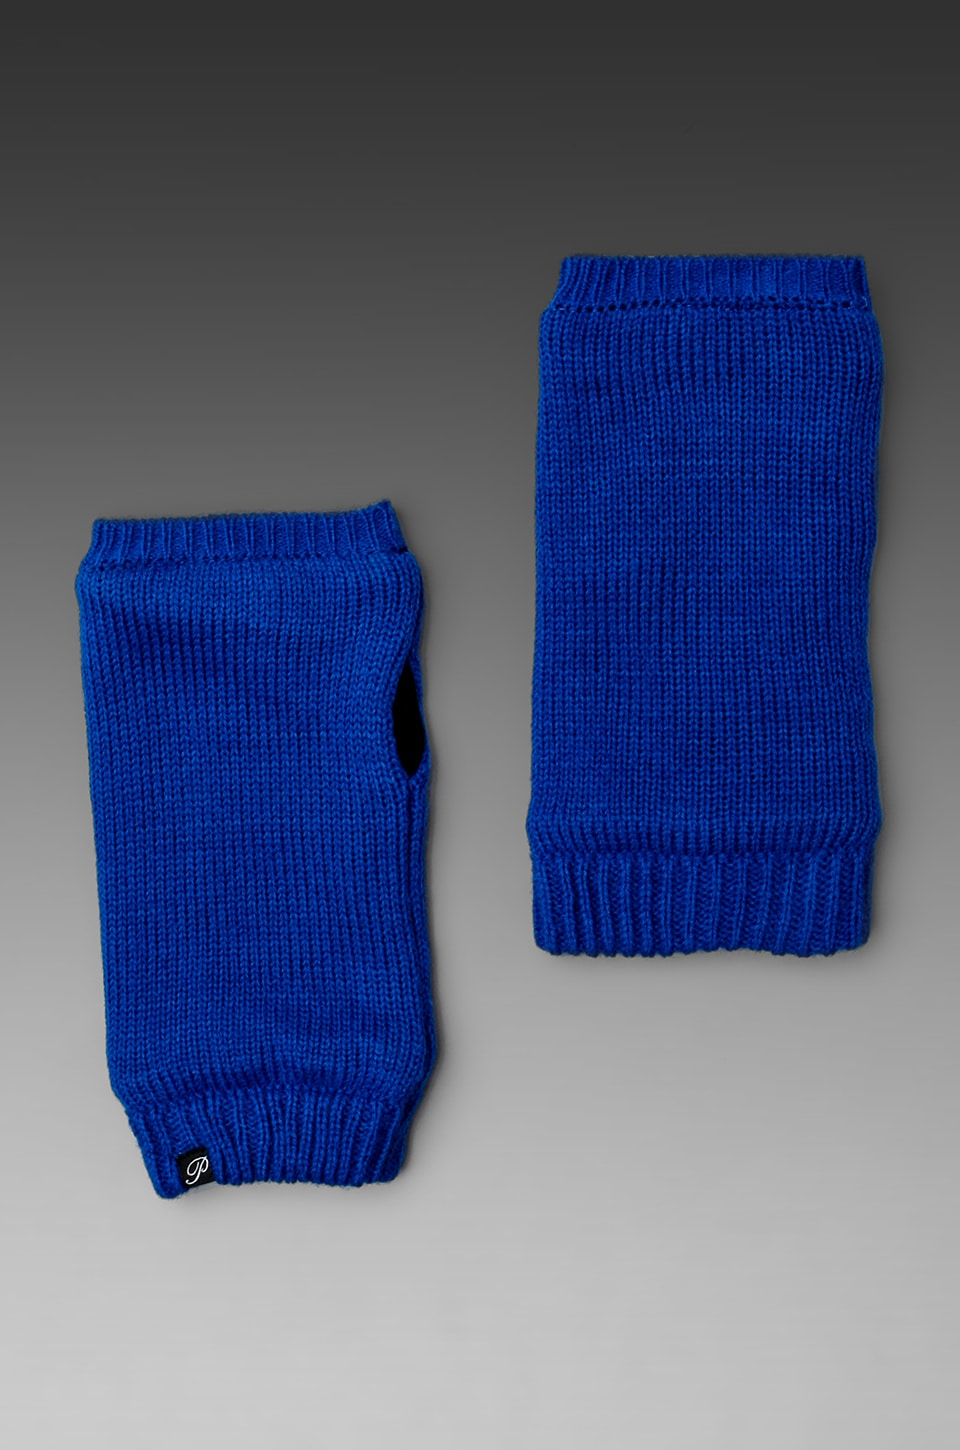 Plush Fleece Lined Neon Handwarmers in Cobalt